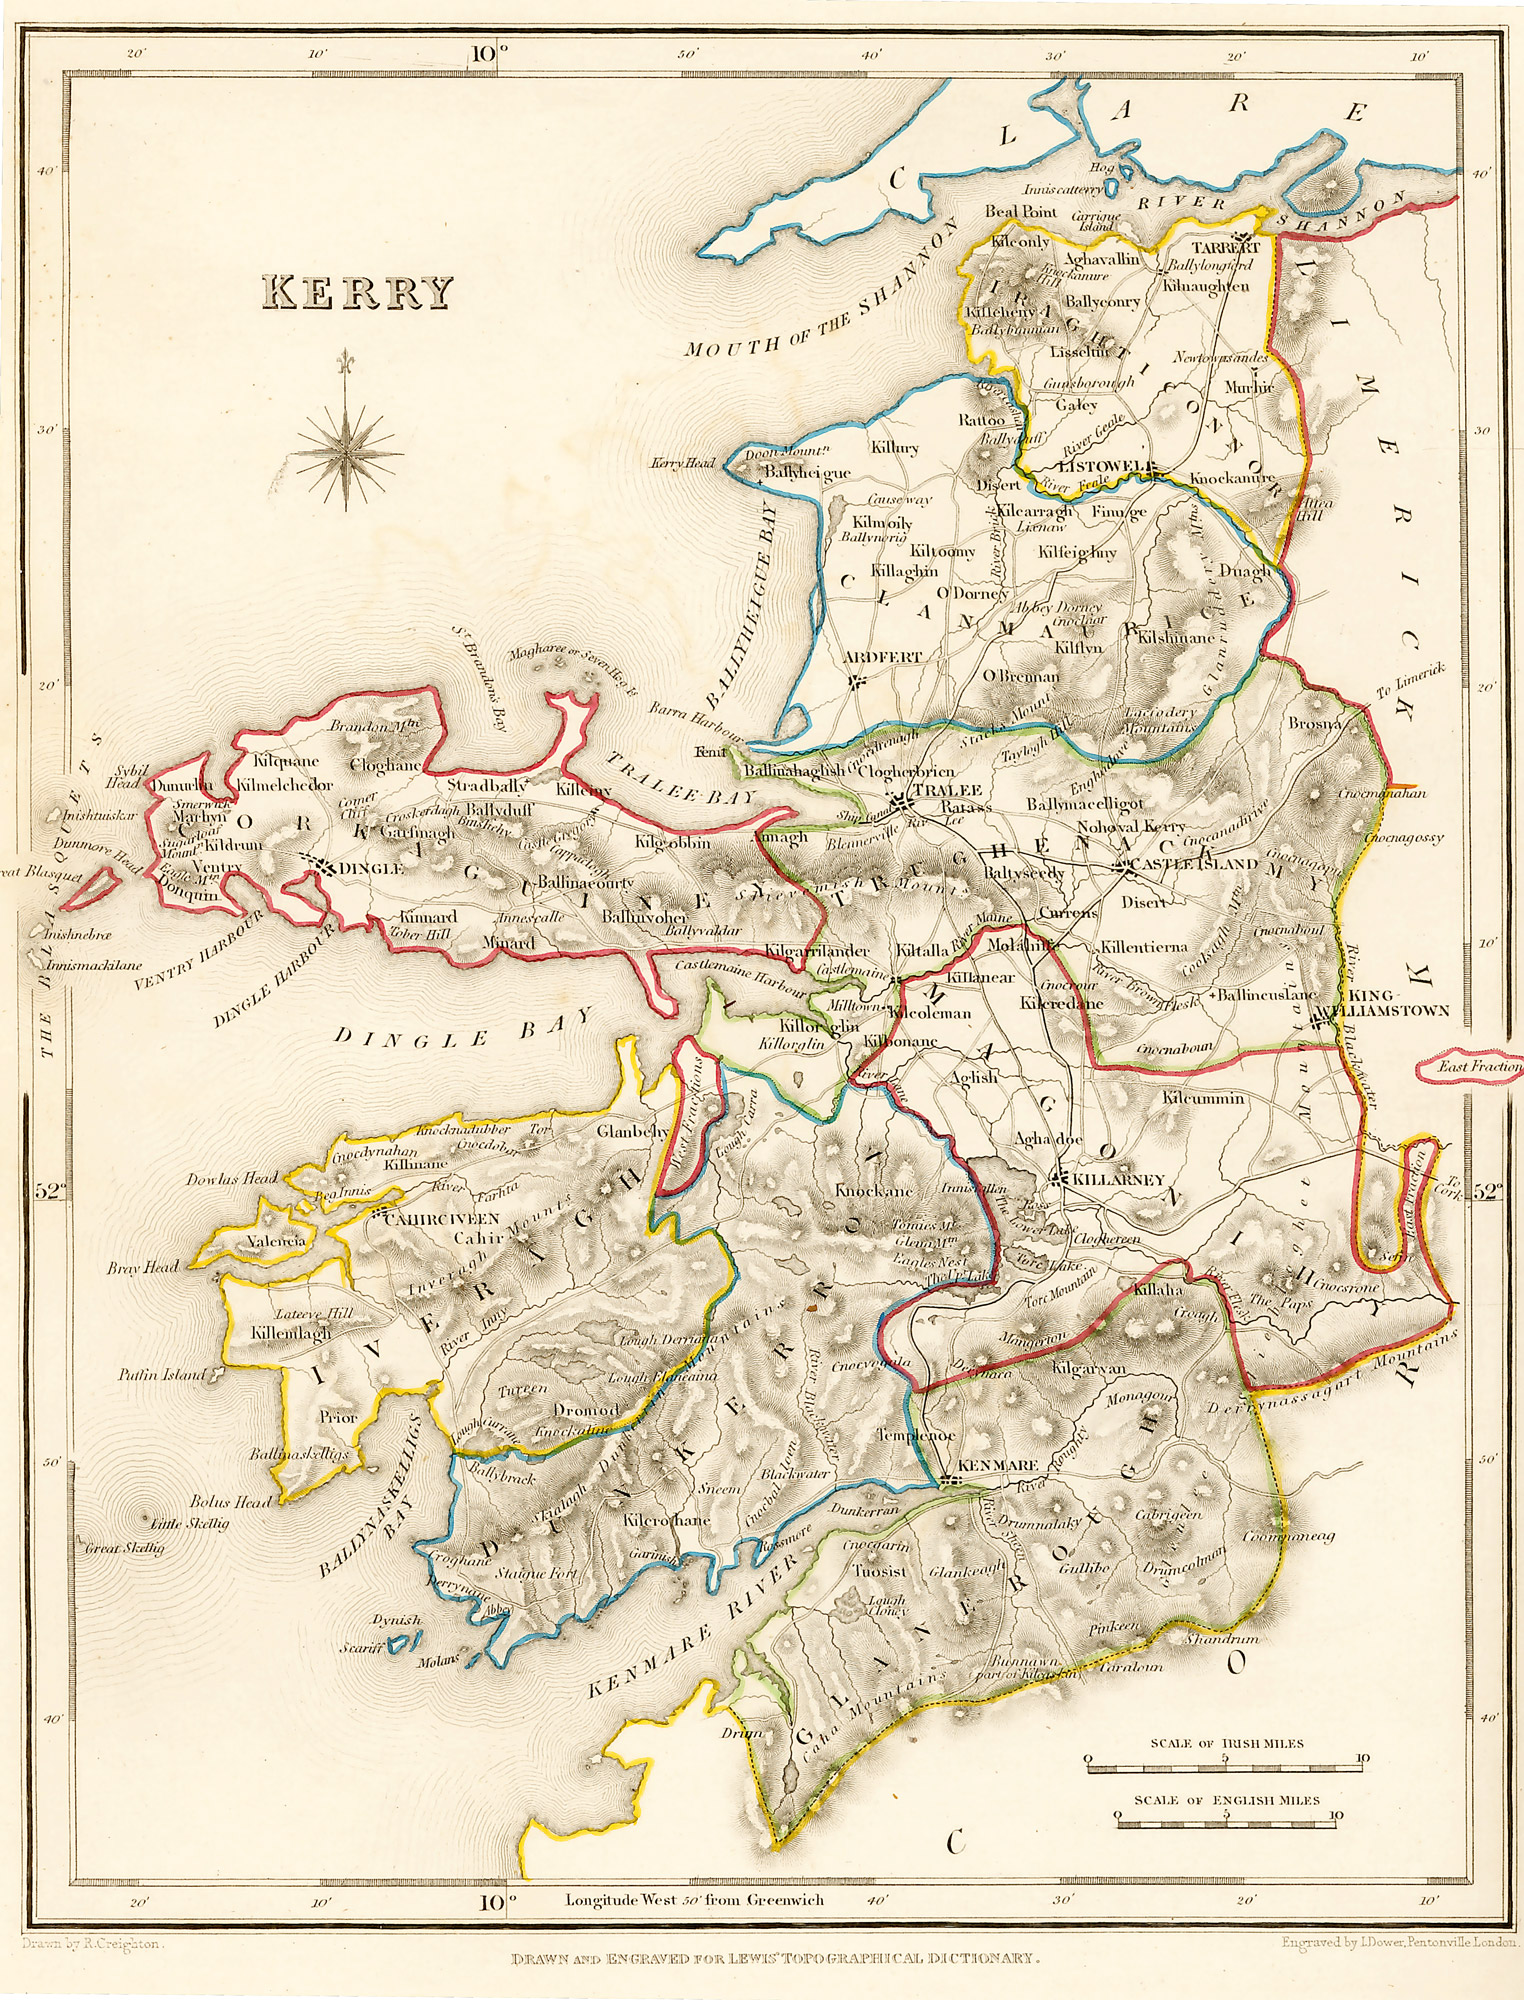 Map Of Ireland Showing Athlone.Historic Maps All Island Ireland Map Collections At Ucd And On